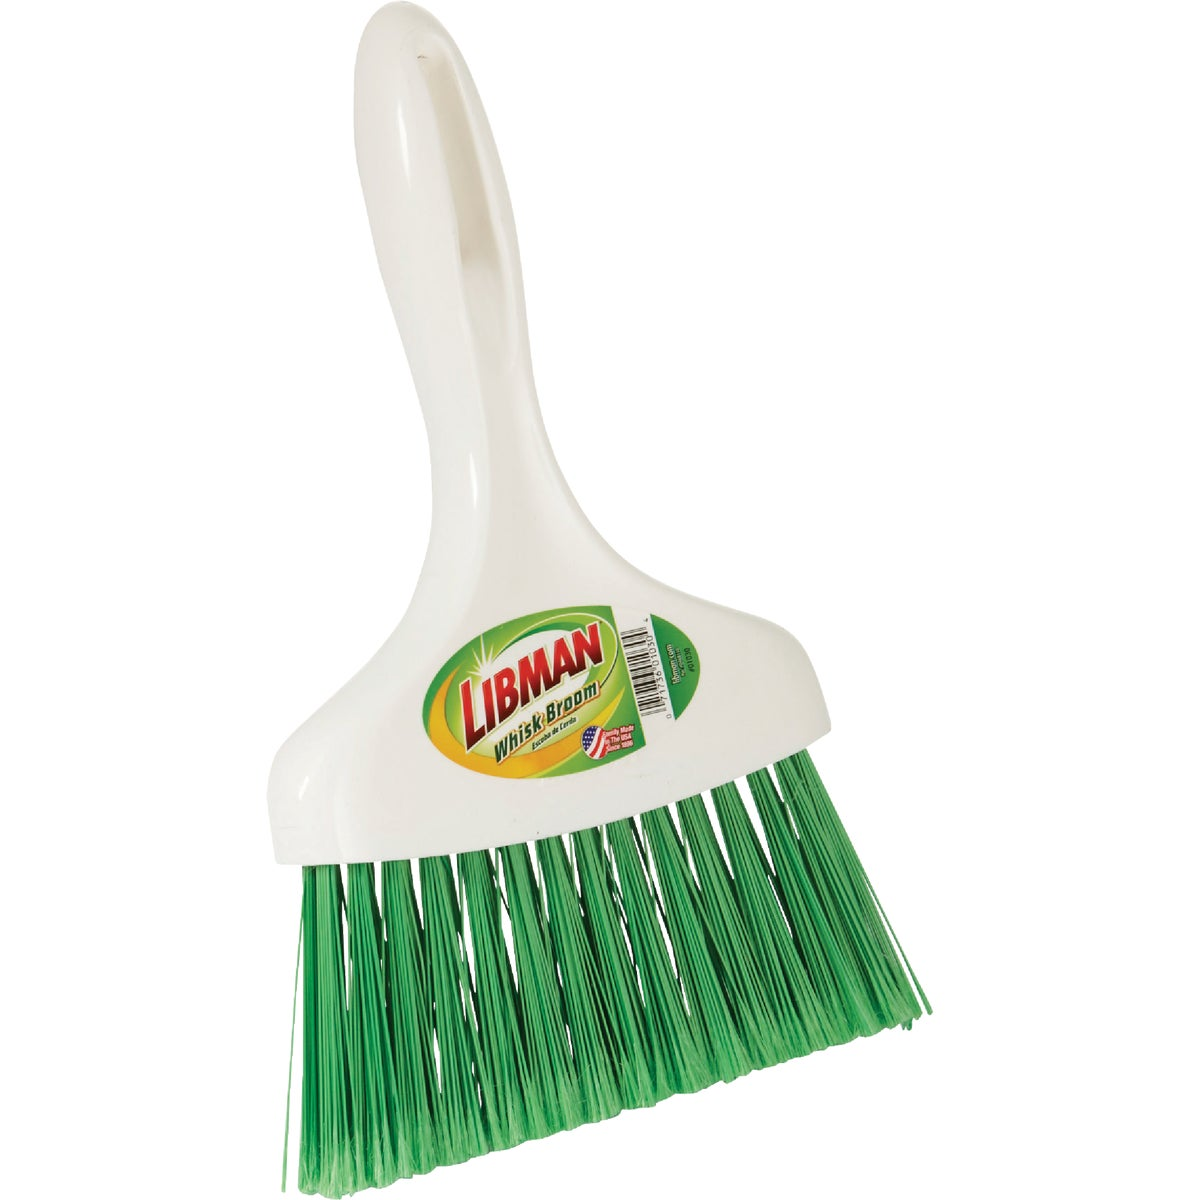 SYNTHETIC WHISK BROOM - 1030 by The Libman Company